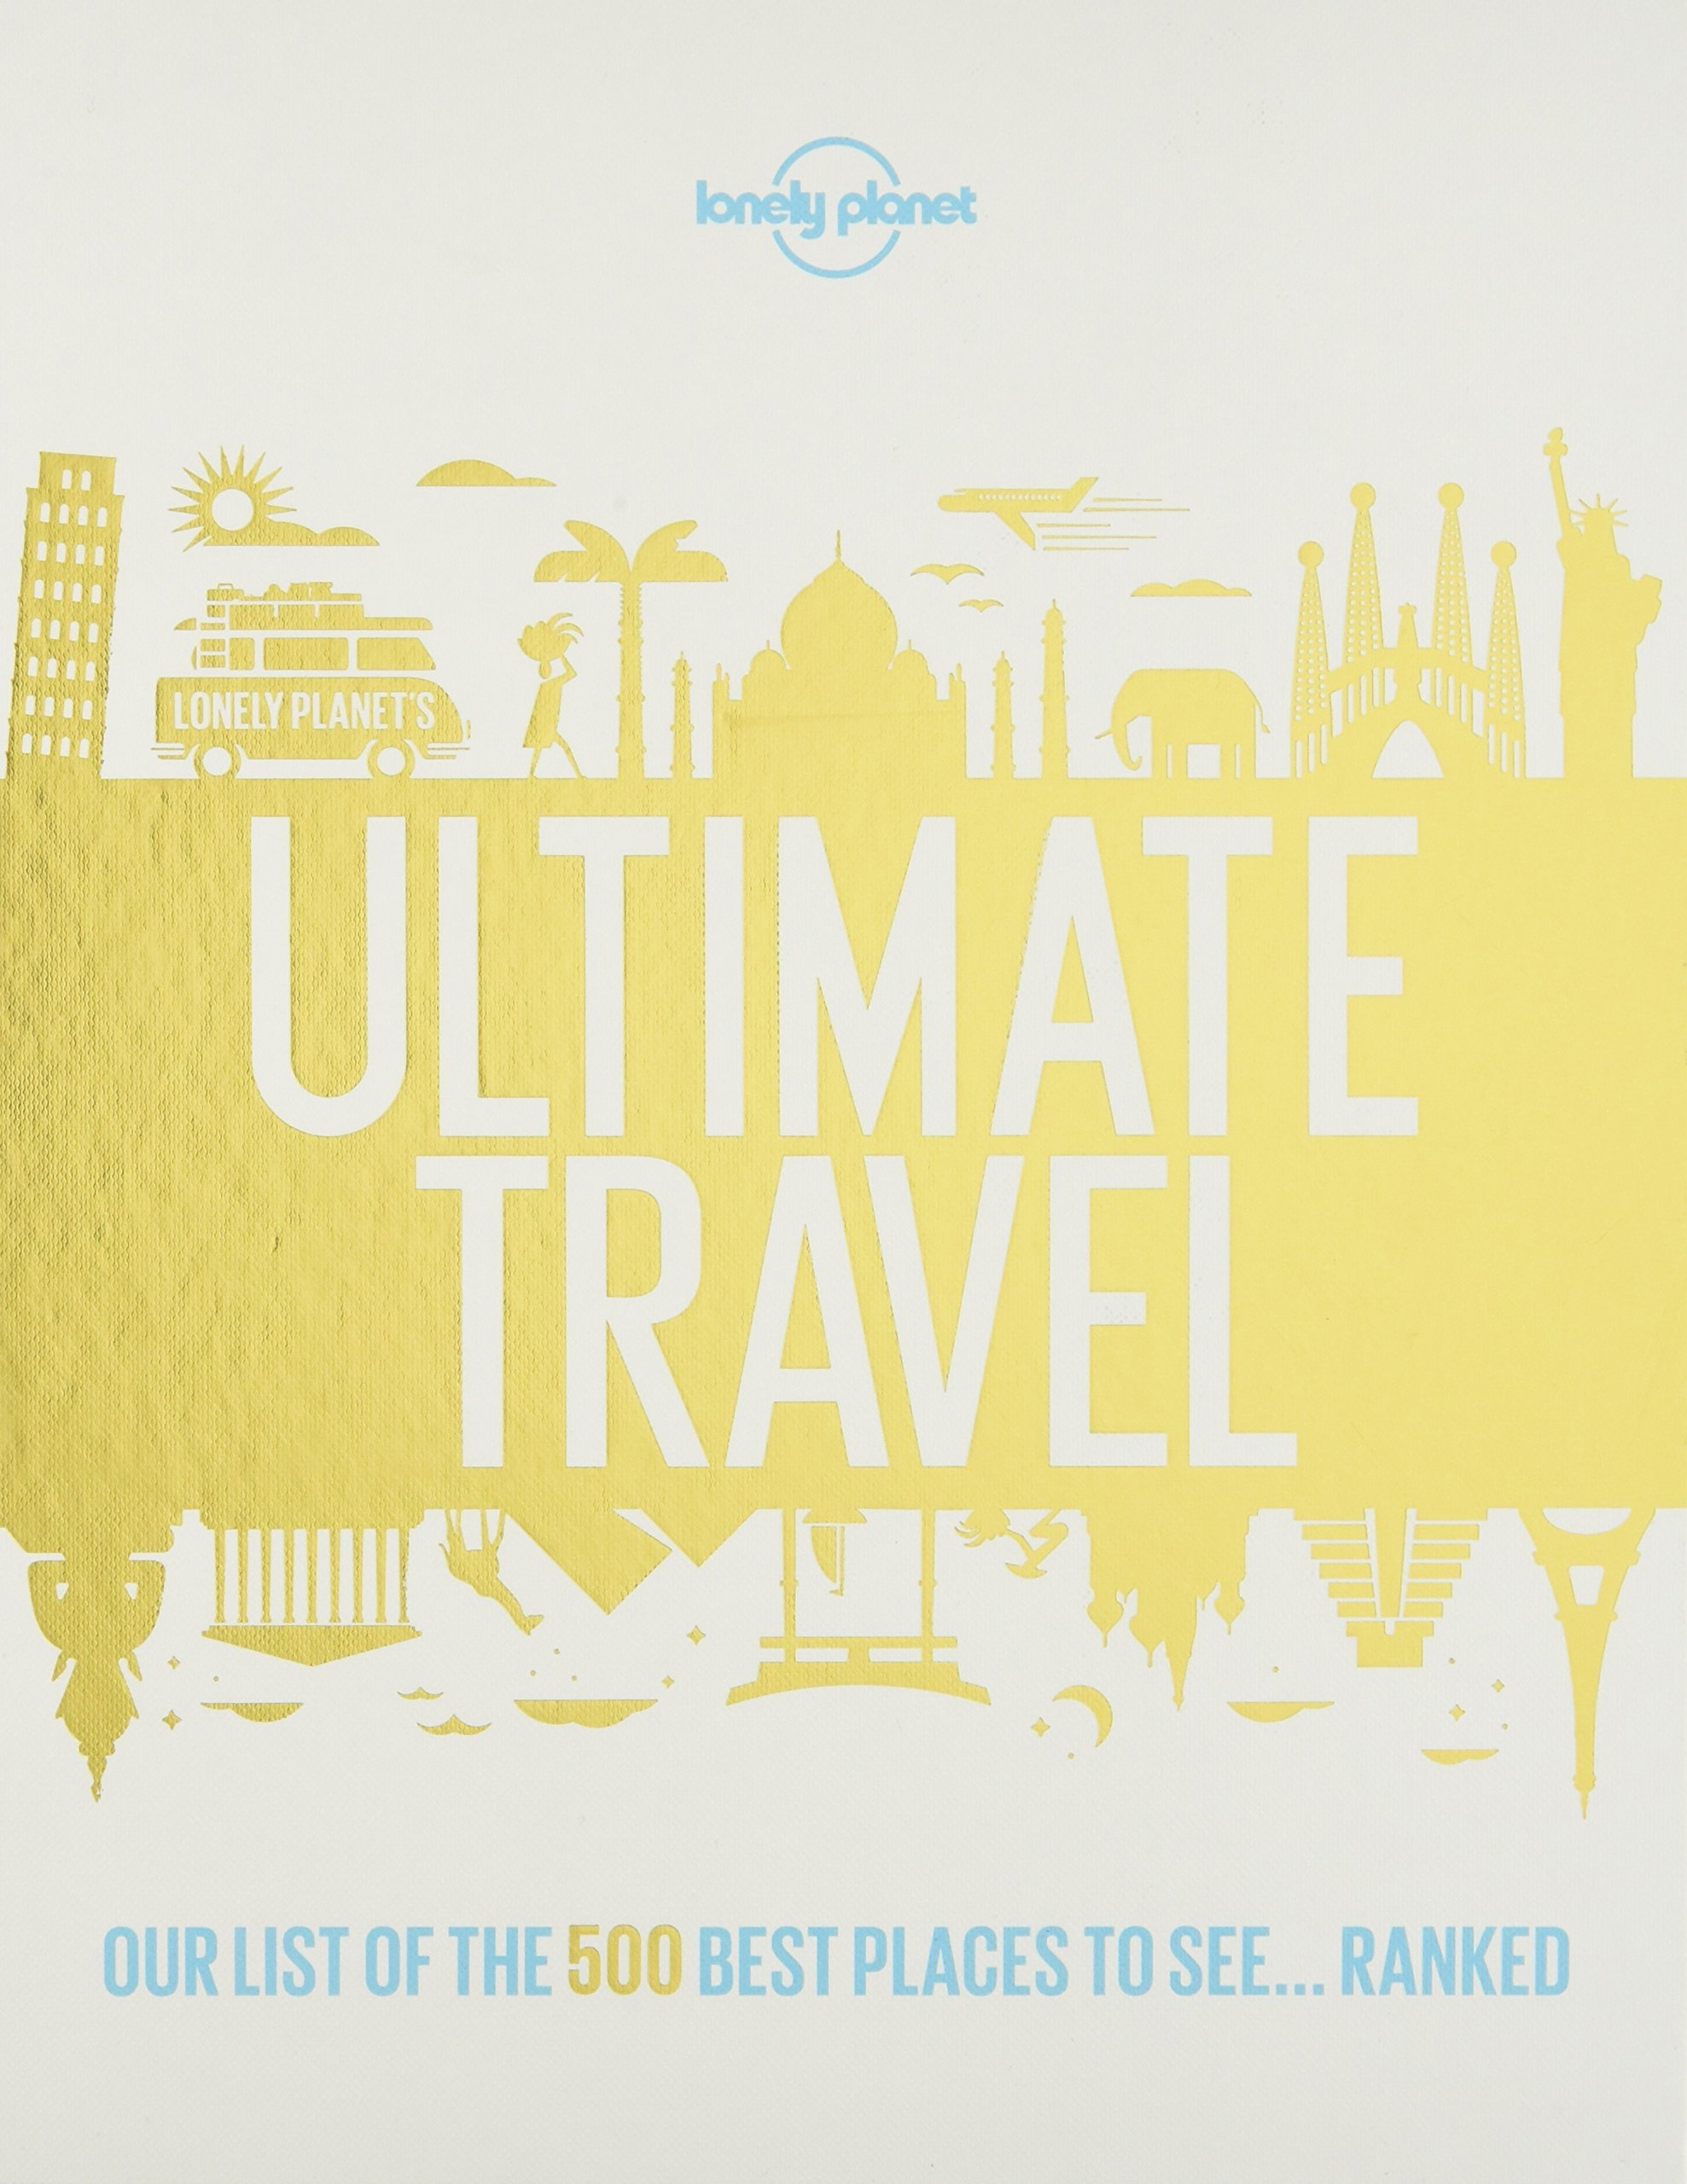 Lonely Planets Ultimate Travel Places product image